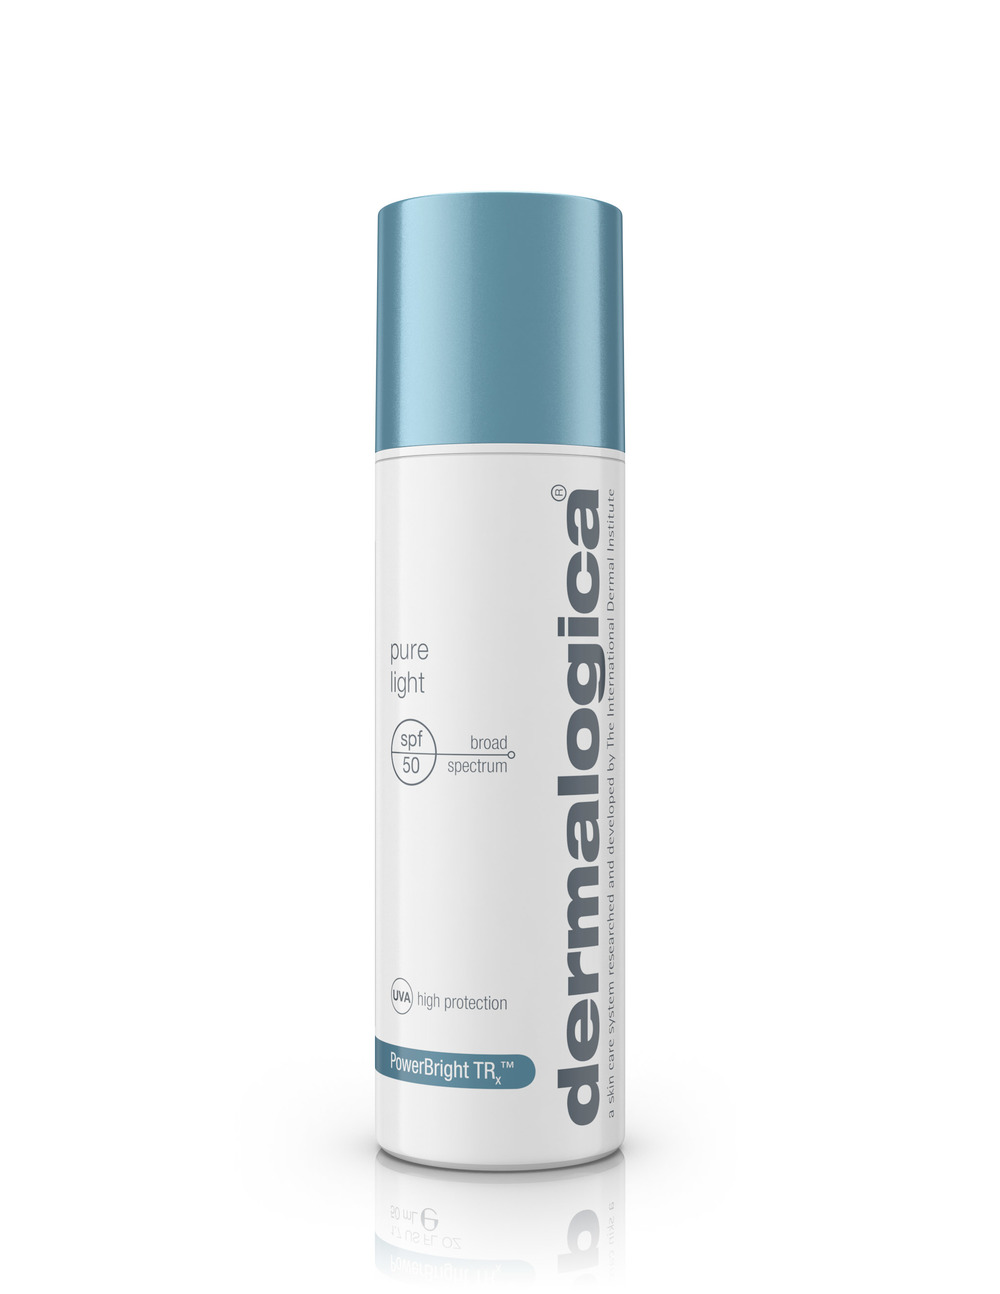 pure light spf50  Shield the skin from UV-induced hyperpigmentation (brown spots, discoloration and uneven skin tone) with this medium-weight daytime treatment. It features Oleosome technology, which uses natural plant spheres filled with sunscreens to increase SPF performance. A powerful peptide helps regulate melanin production while a potent blend of Red and Brown Algae combined with botanical extracts, help balance uneven skin tone. Cross-linked Hyaluronic Acid fortifies the skin's natural moisture barrier, reducing the appearance of fine dehydration lines. Formulated without artificial fragrances, colors or parabens.